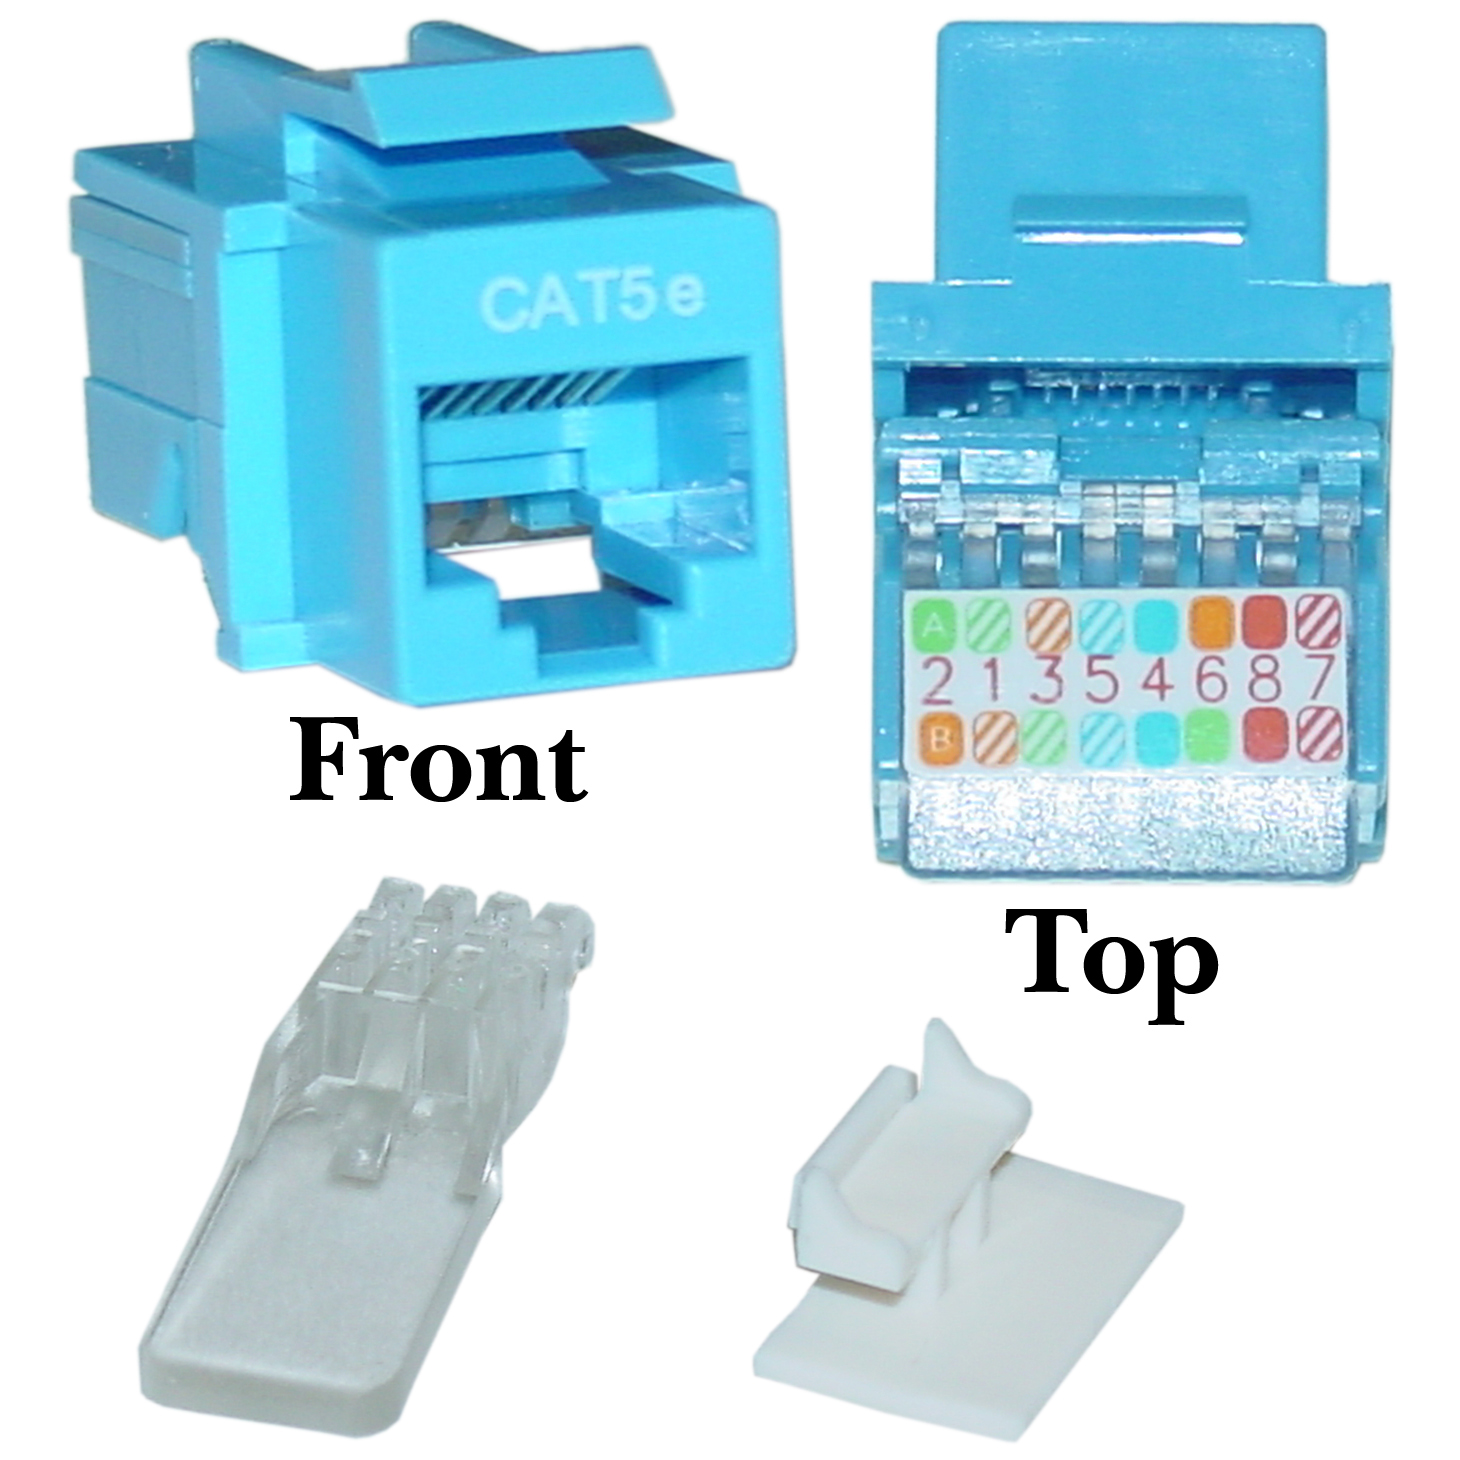 blue cat5e rj45 keystone jack, toolless leviton cat5e wiring diagram cat5e keystone jack, blue, toolless, rj45 female part number 311